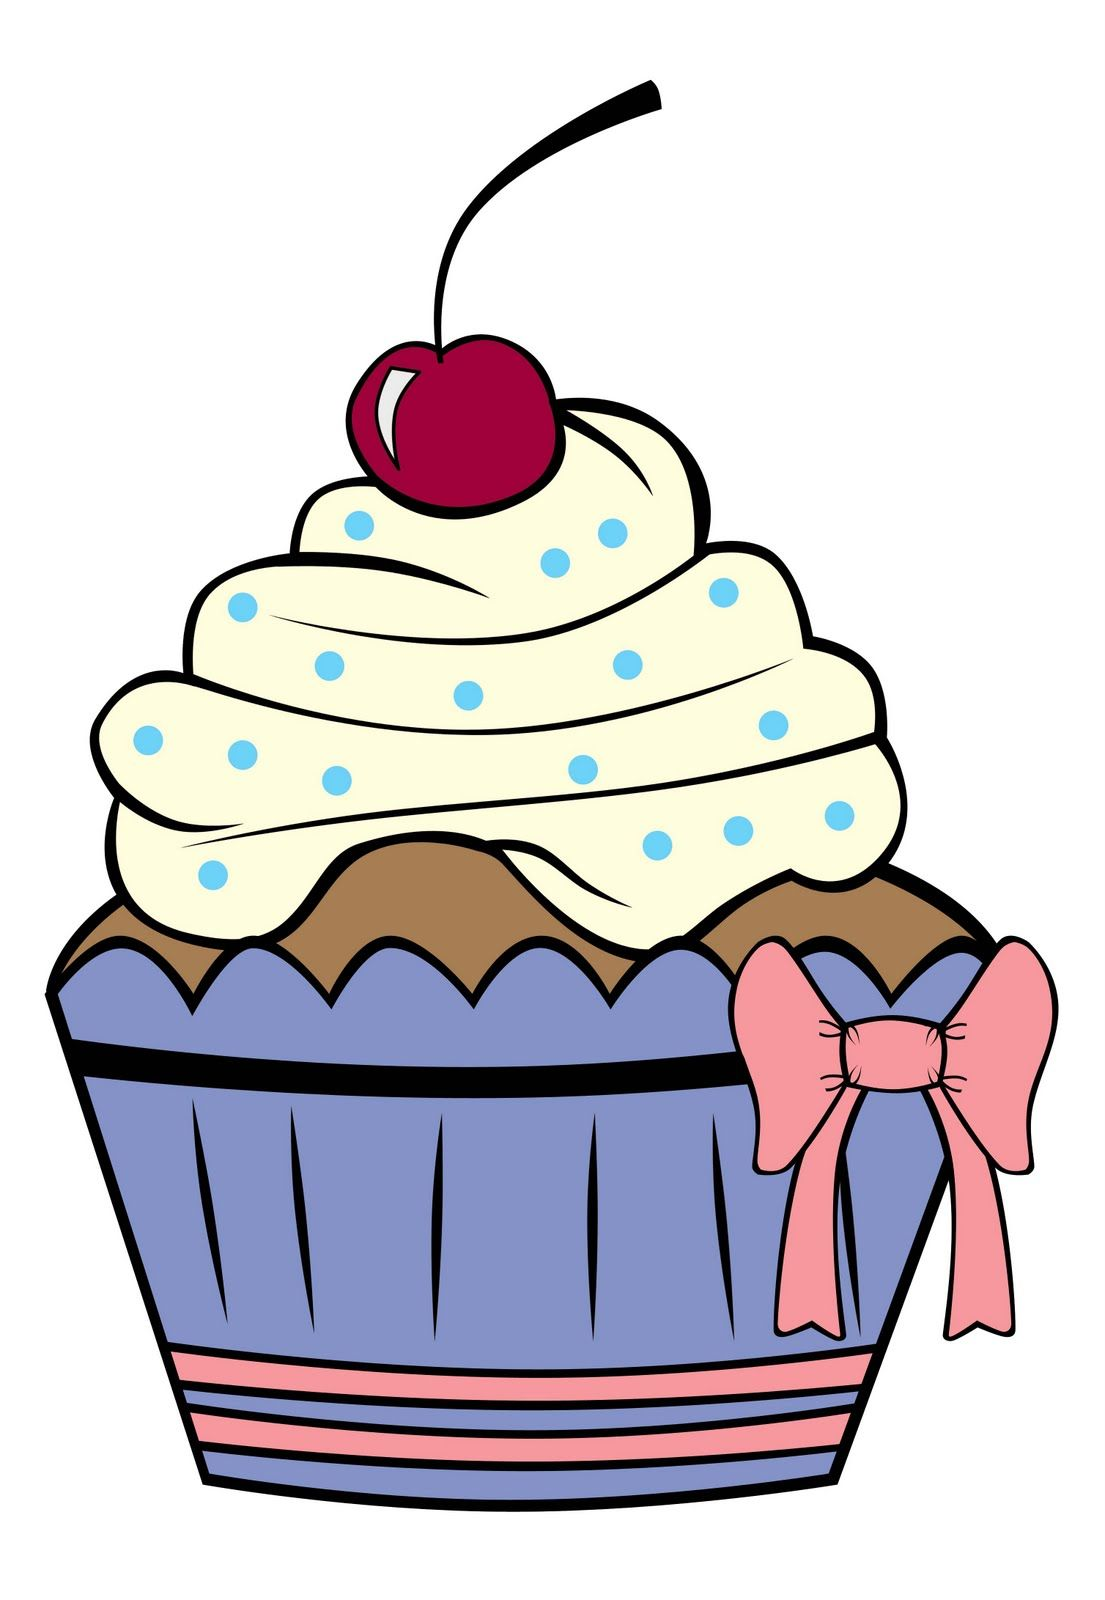 cupcake outline clip art cartoon cupcake outline cake cupcakes